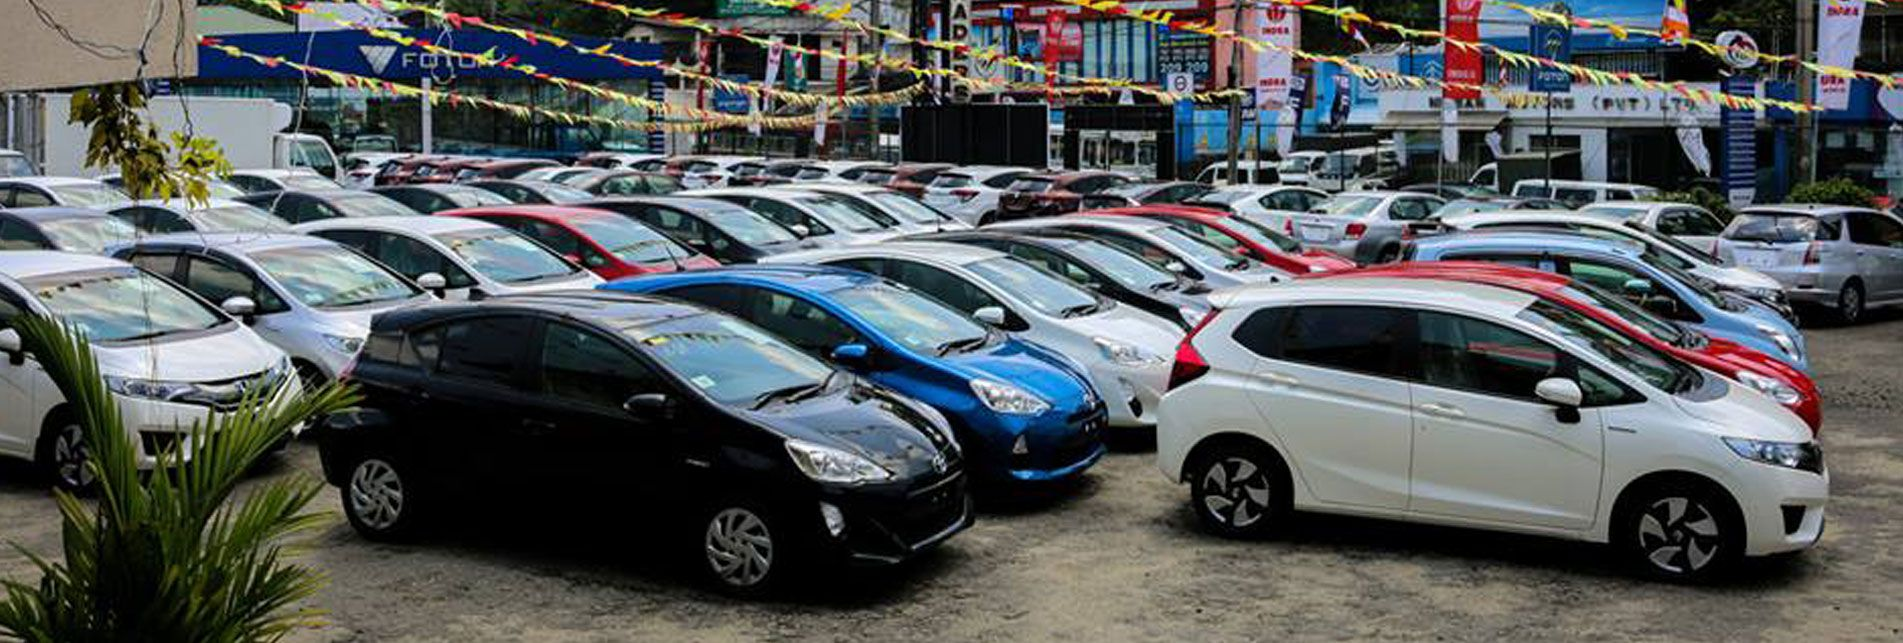 car sales sri lanka motor vehicles Pinterest Sri